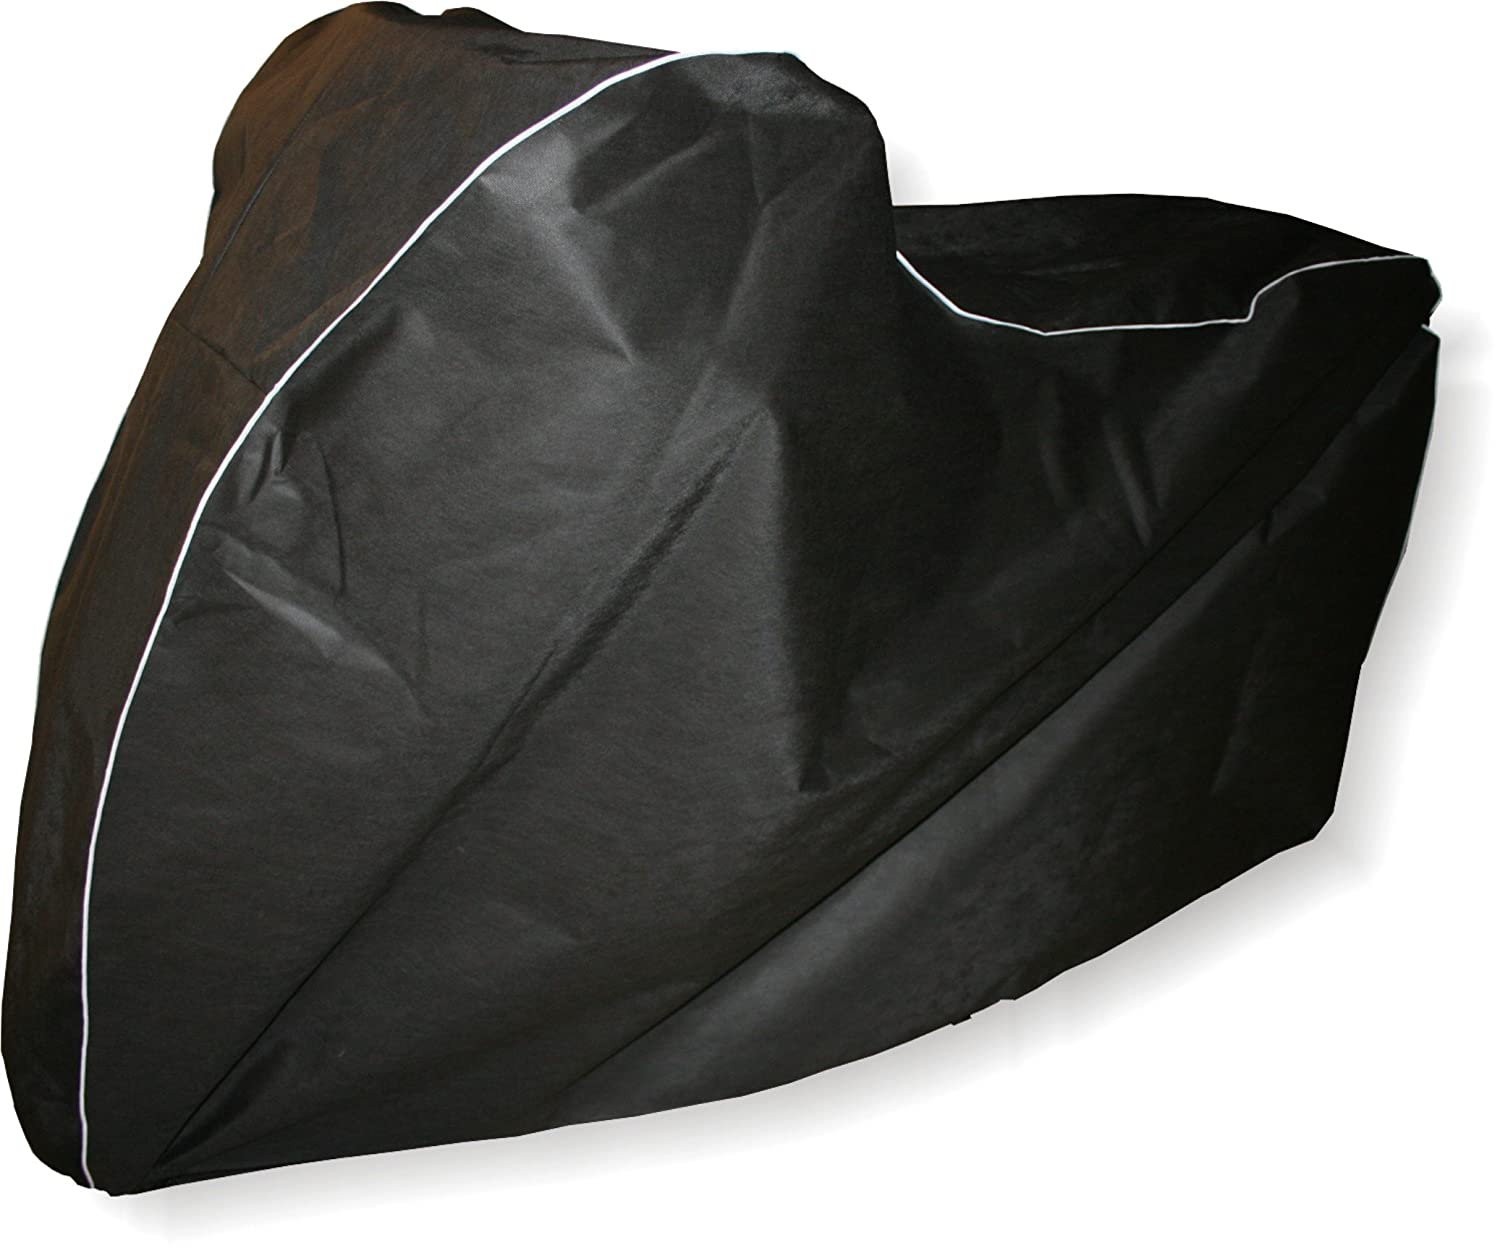 * Harley Davidson Sportster 883 1200 Iron Superlow Indoor Motorcycle Bike dust cover No Print DustOff Covers